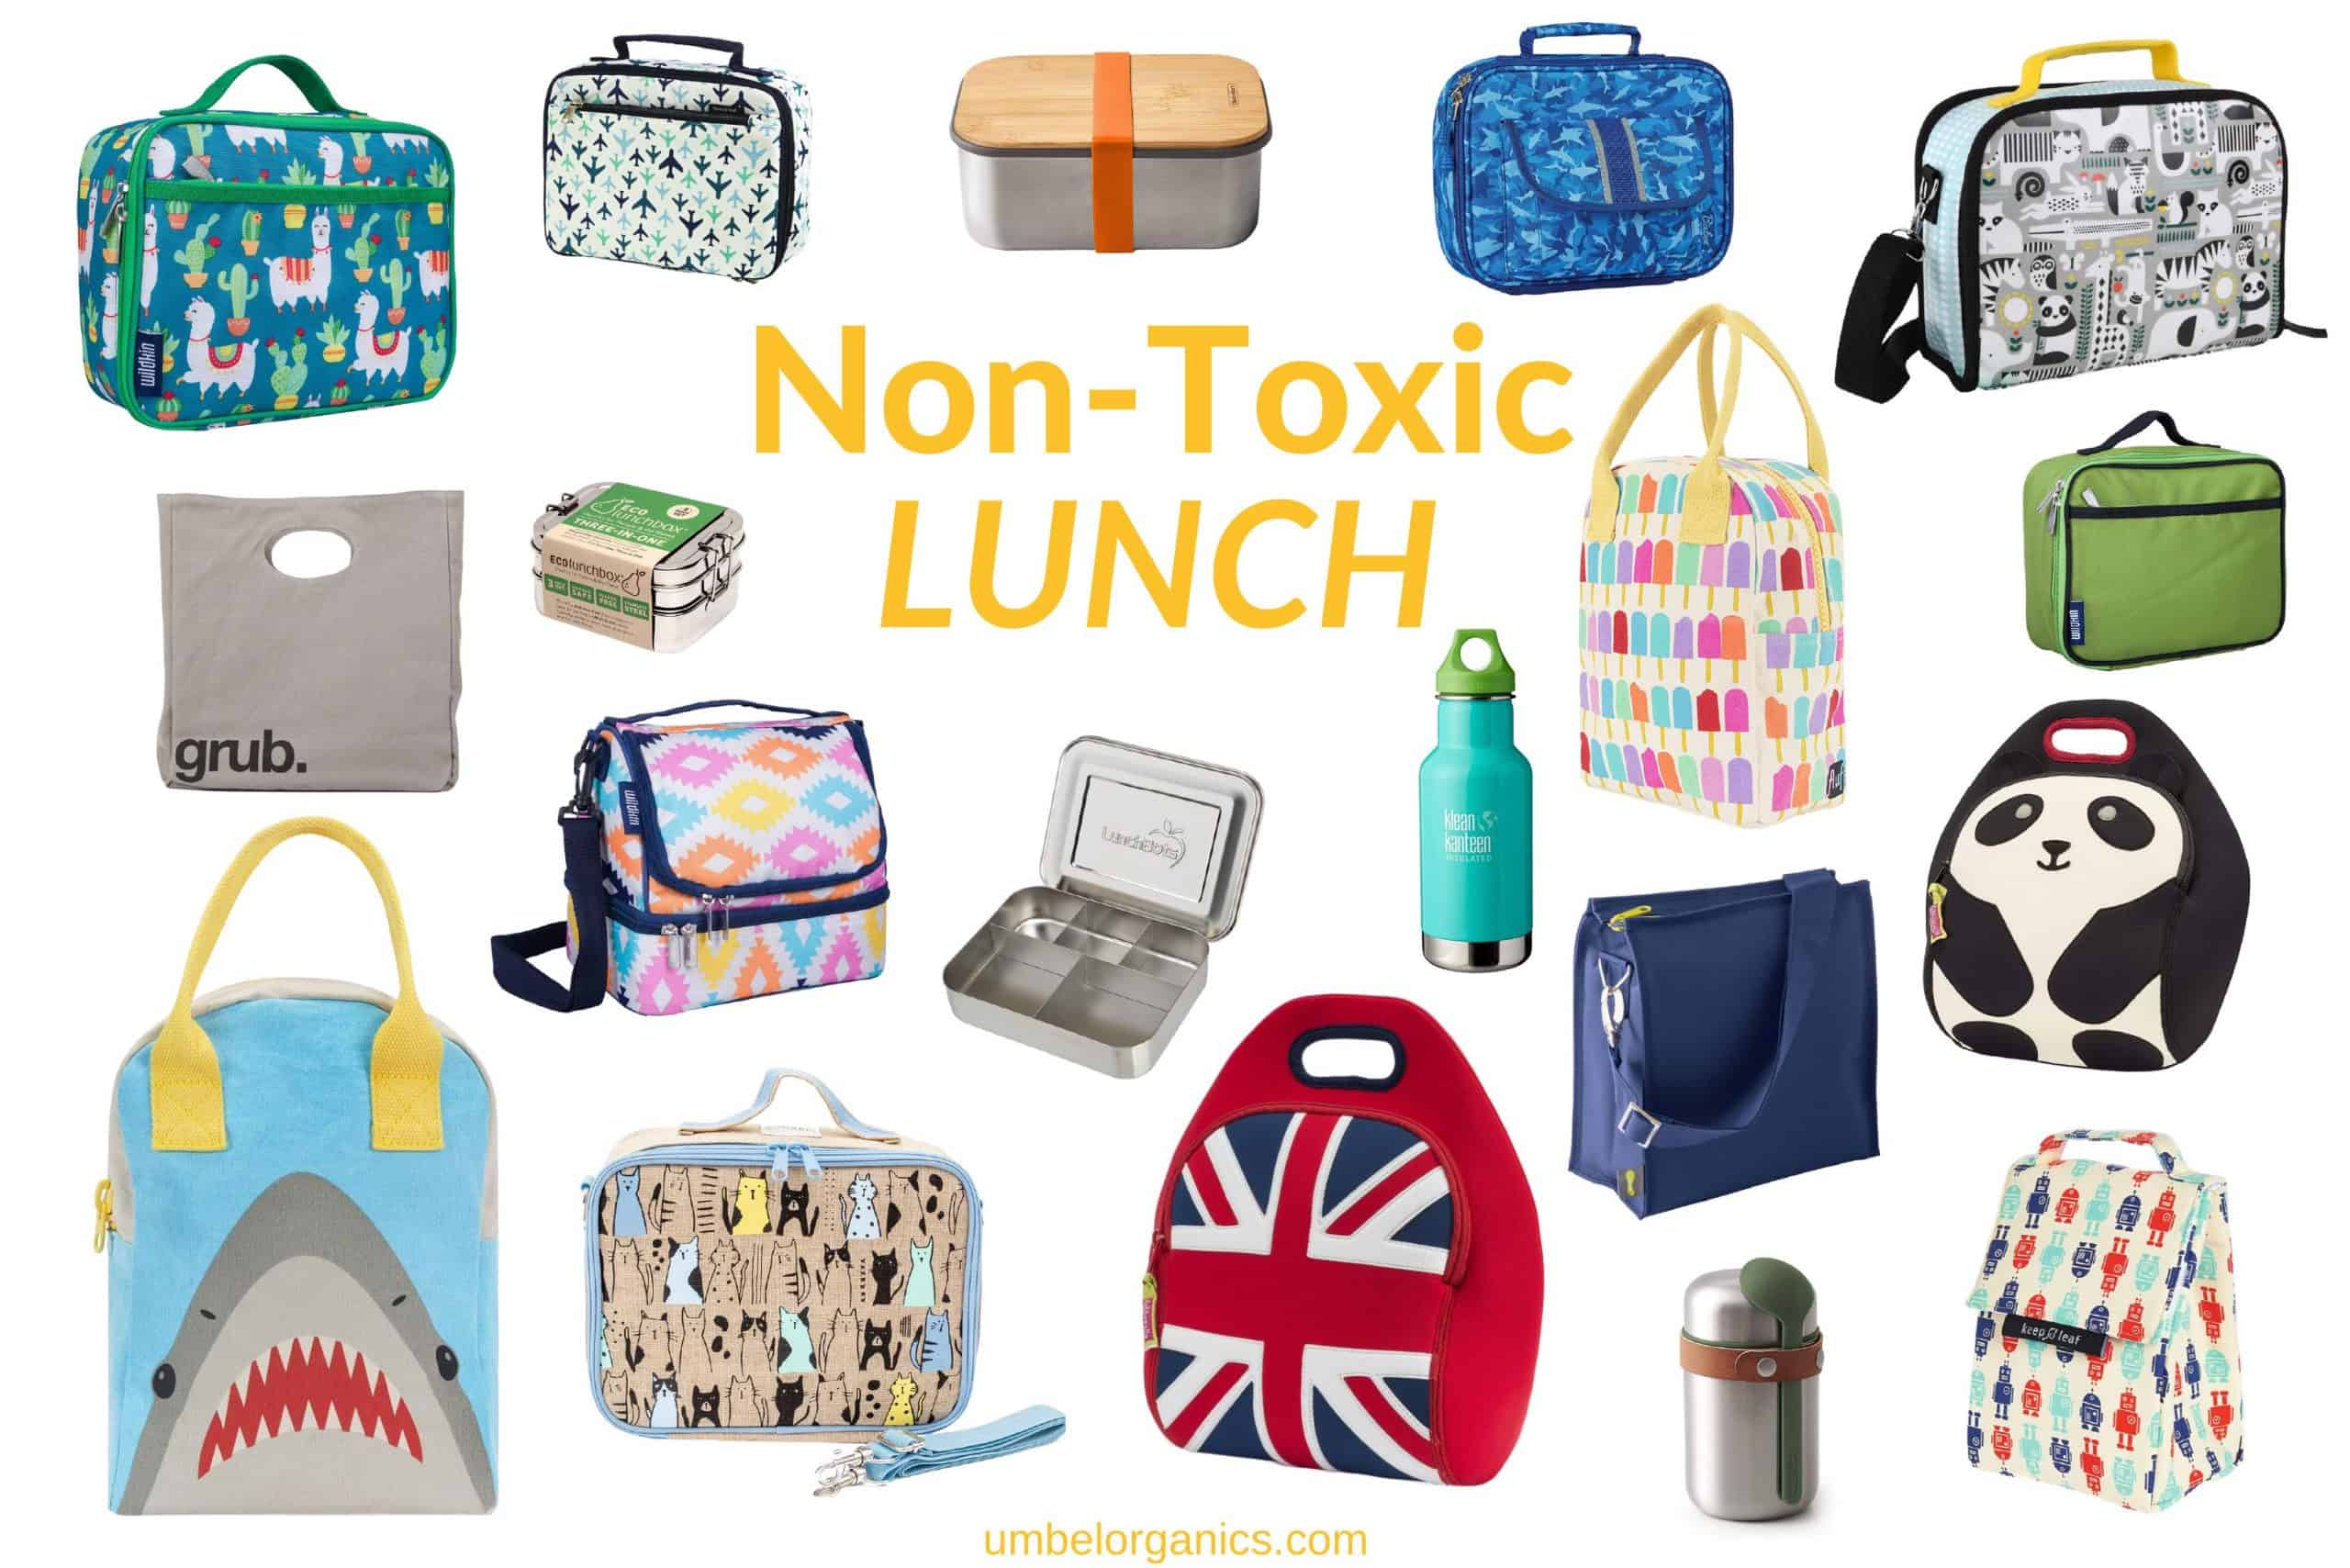 Non-toxic lunchboxes, lunch bags and accessories